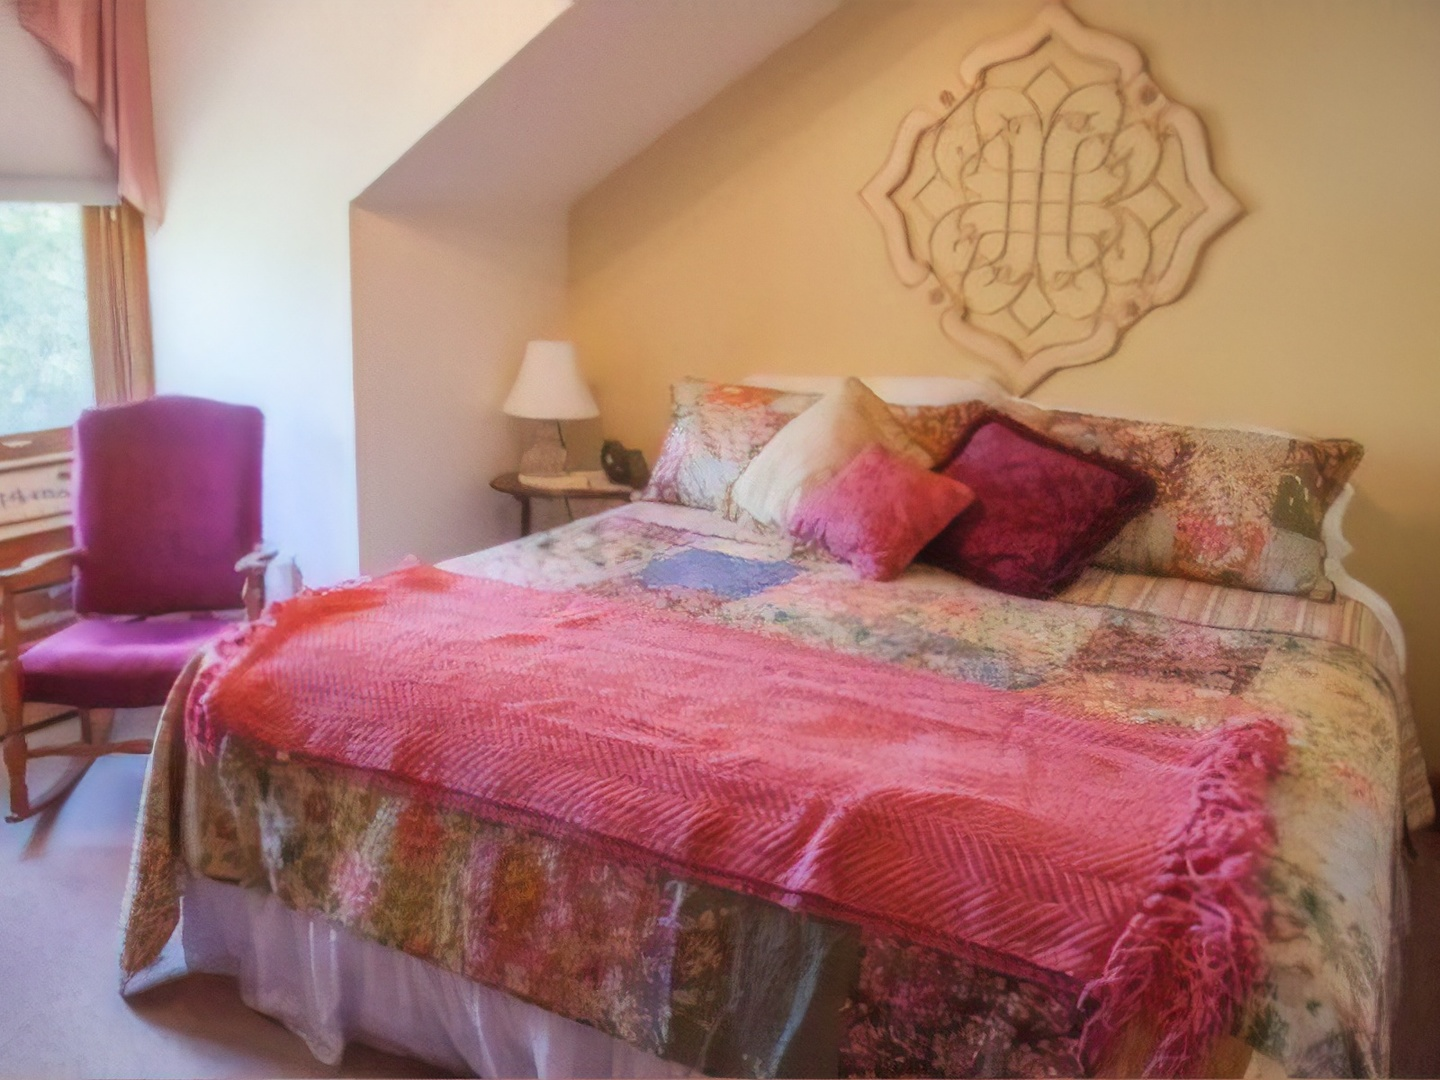 A bed with a pink blanket at Bross Hotel Bed & Breakfast.